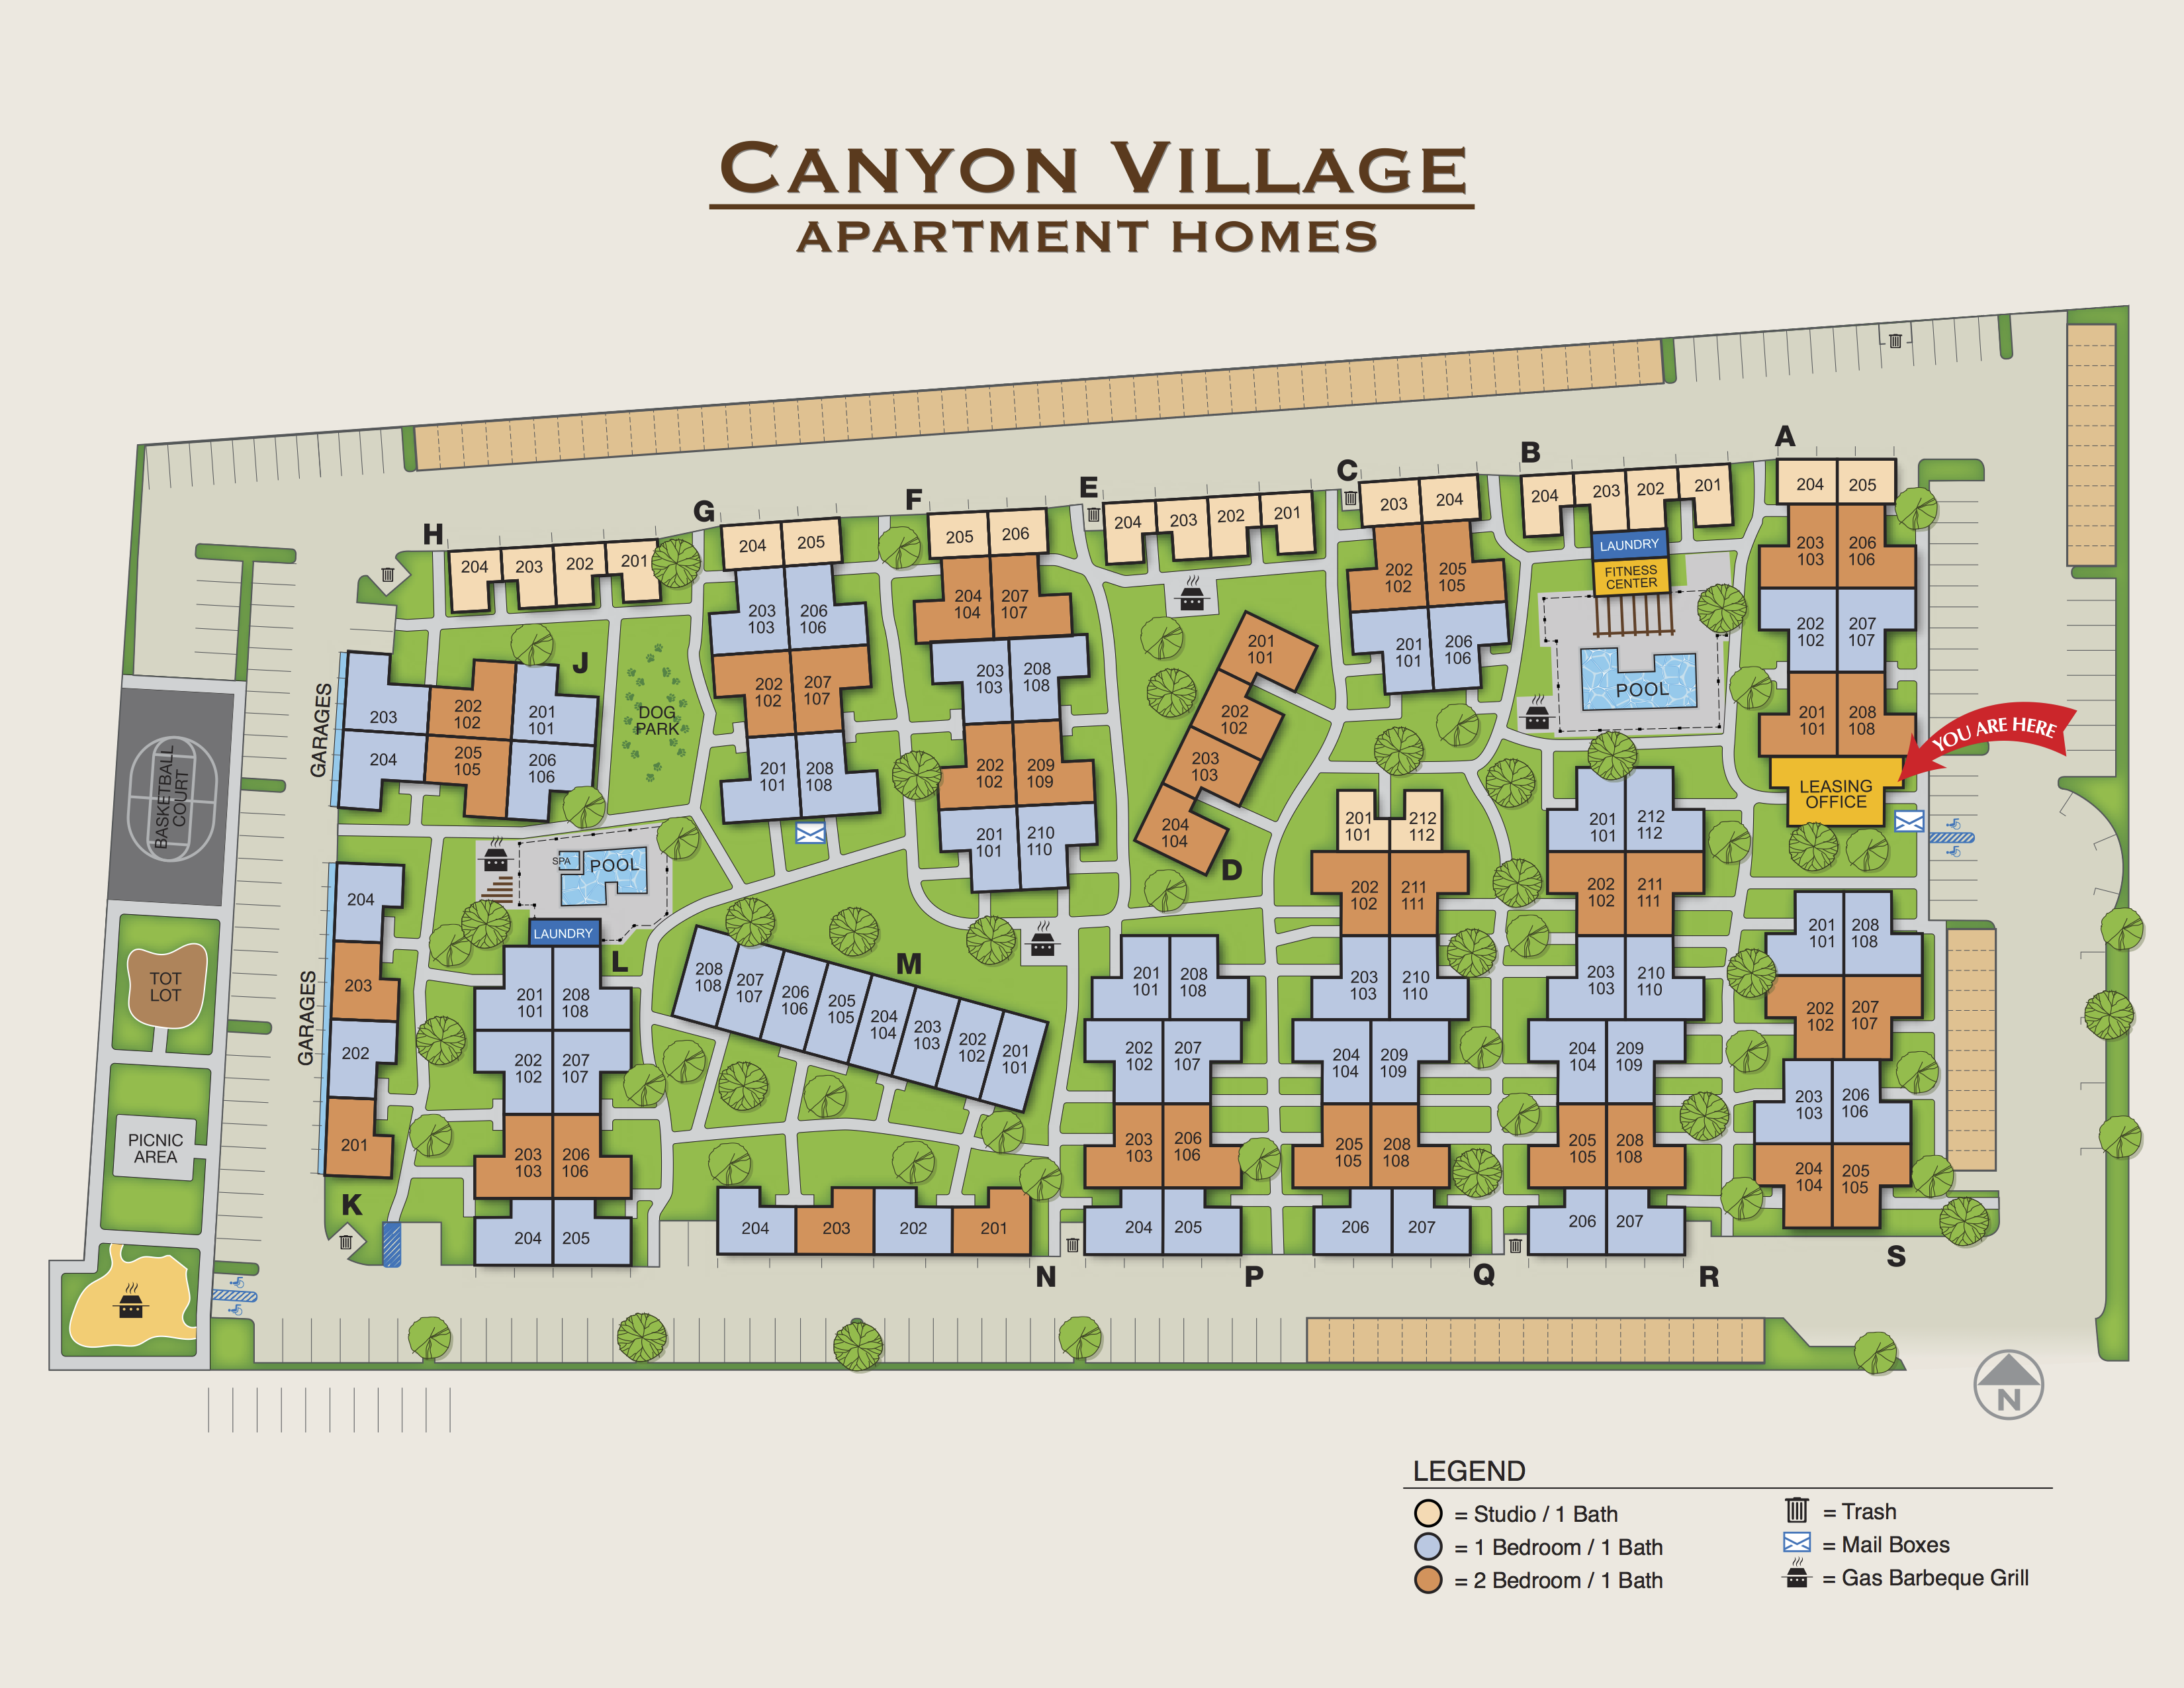 Canyon Village Apartment Homes